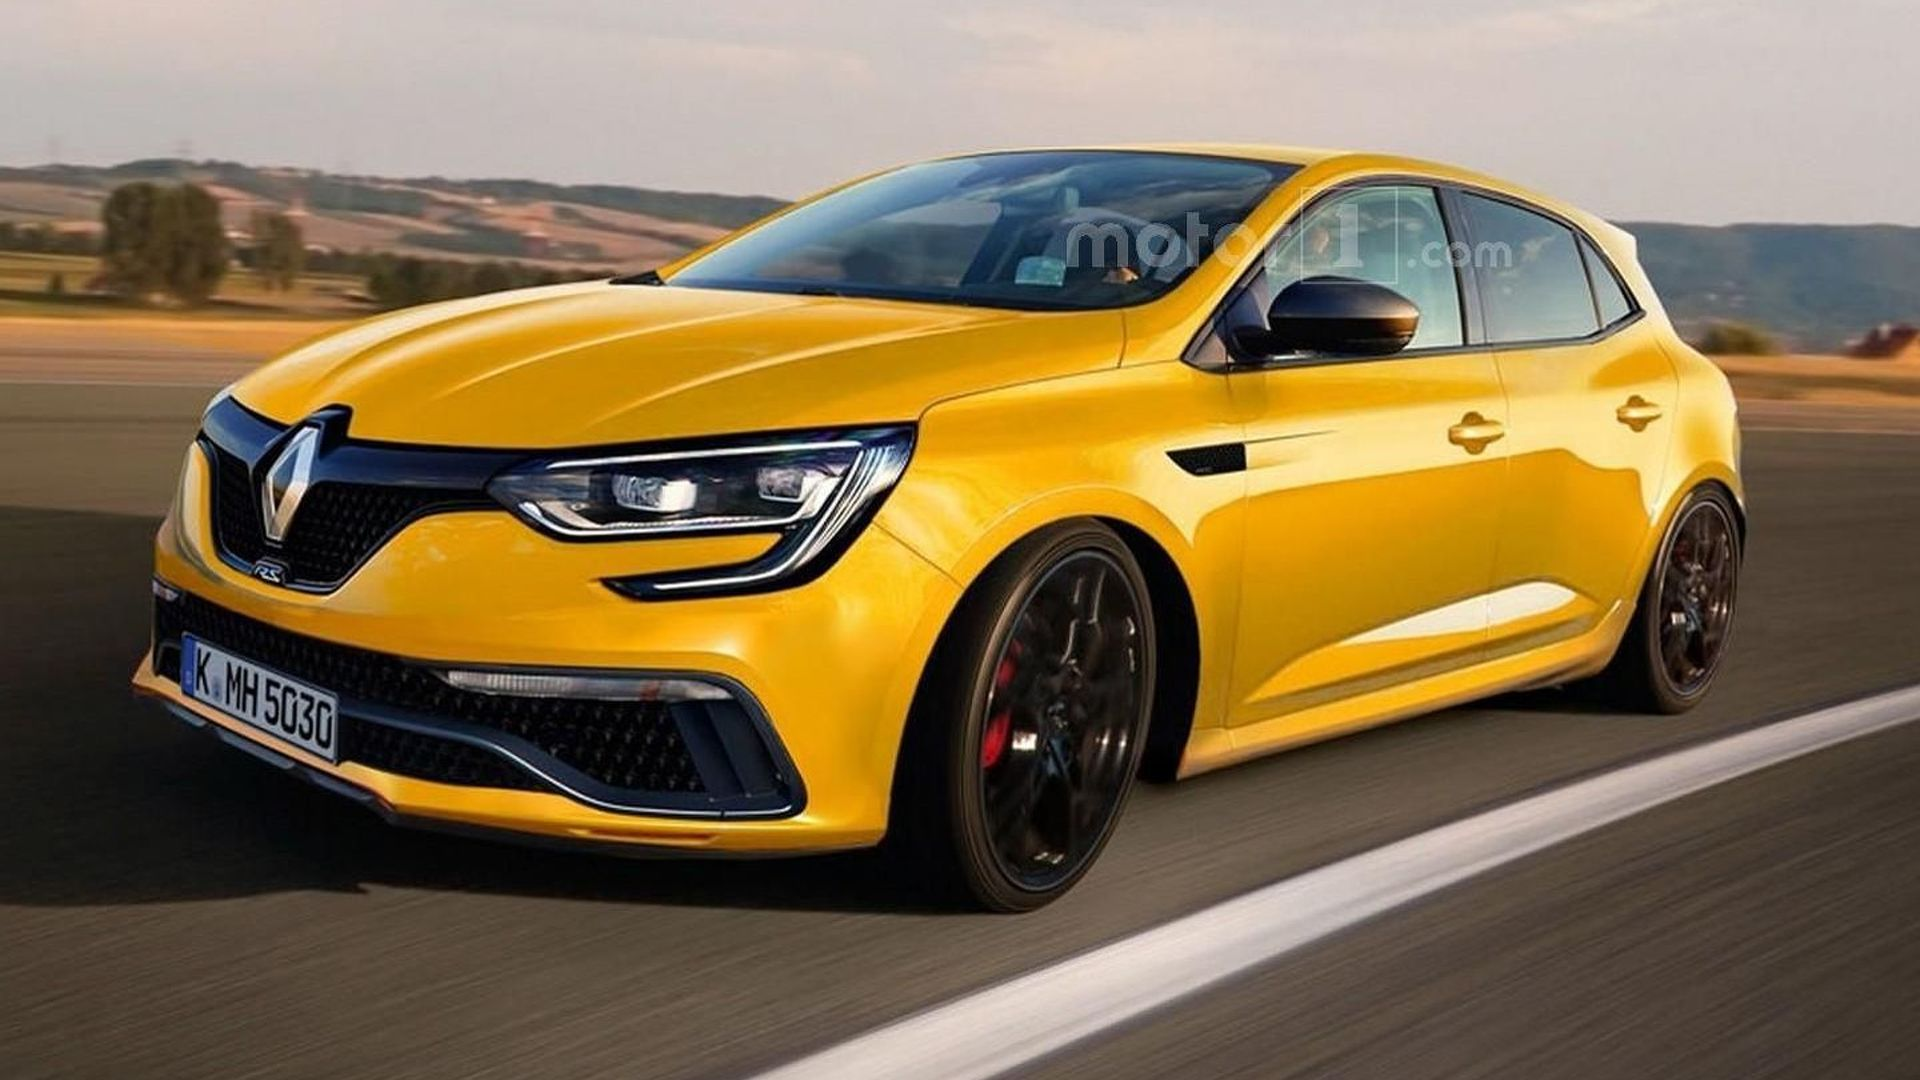 2017 Renault Megane RS render sees into the future